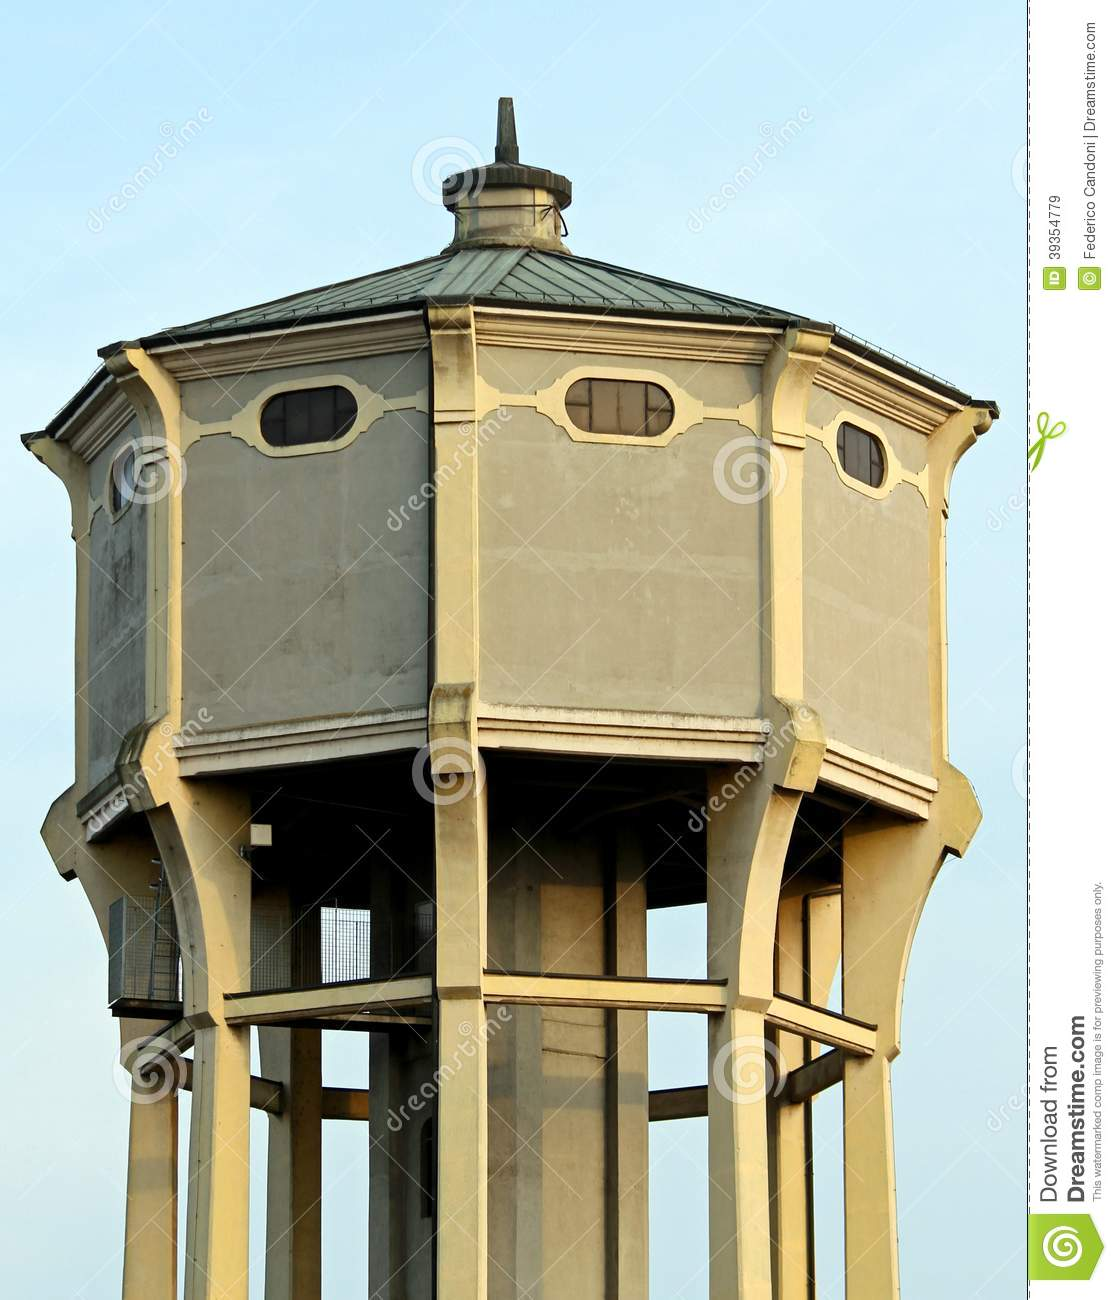 Water tower with the large reservoir for drinking water